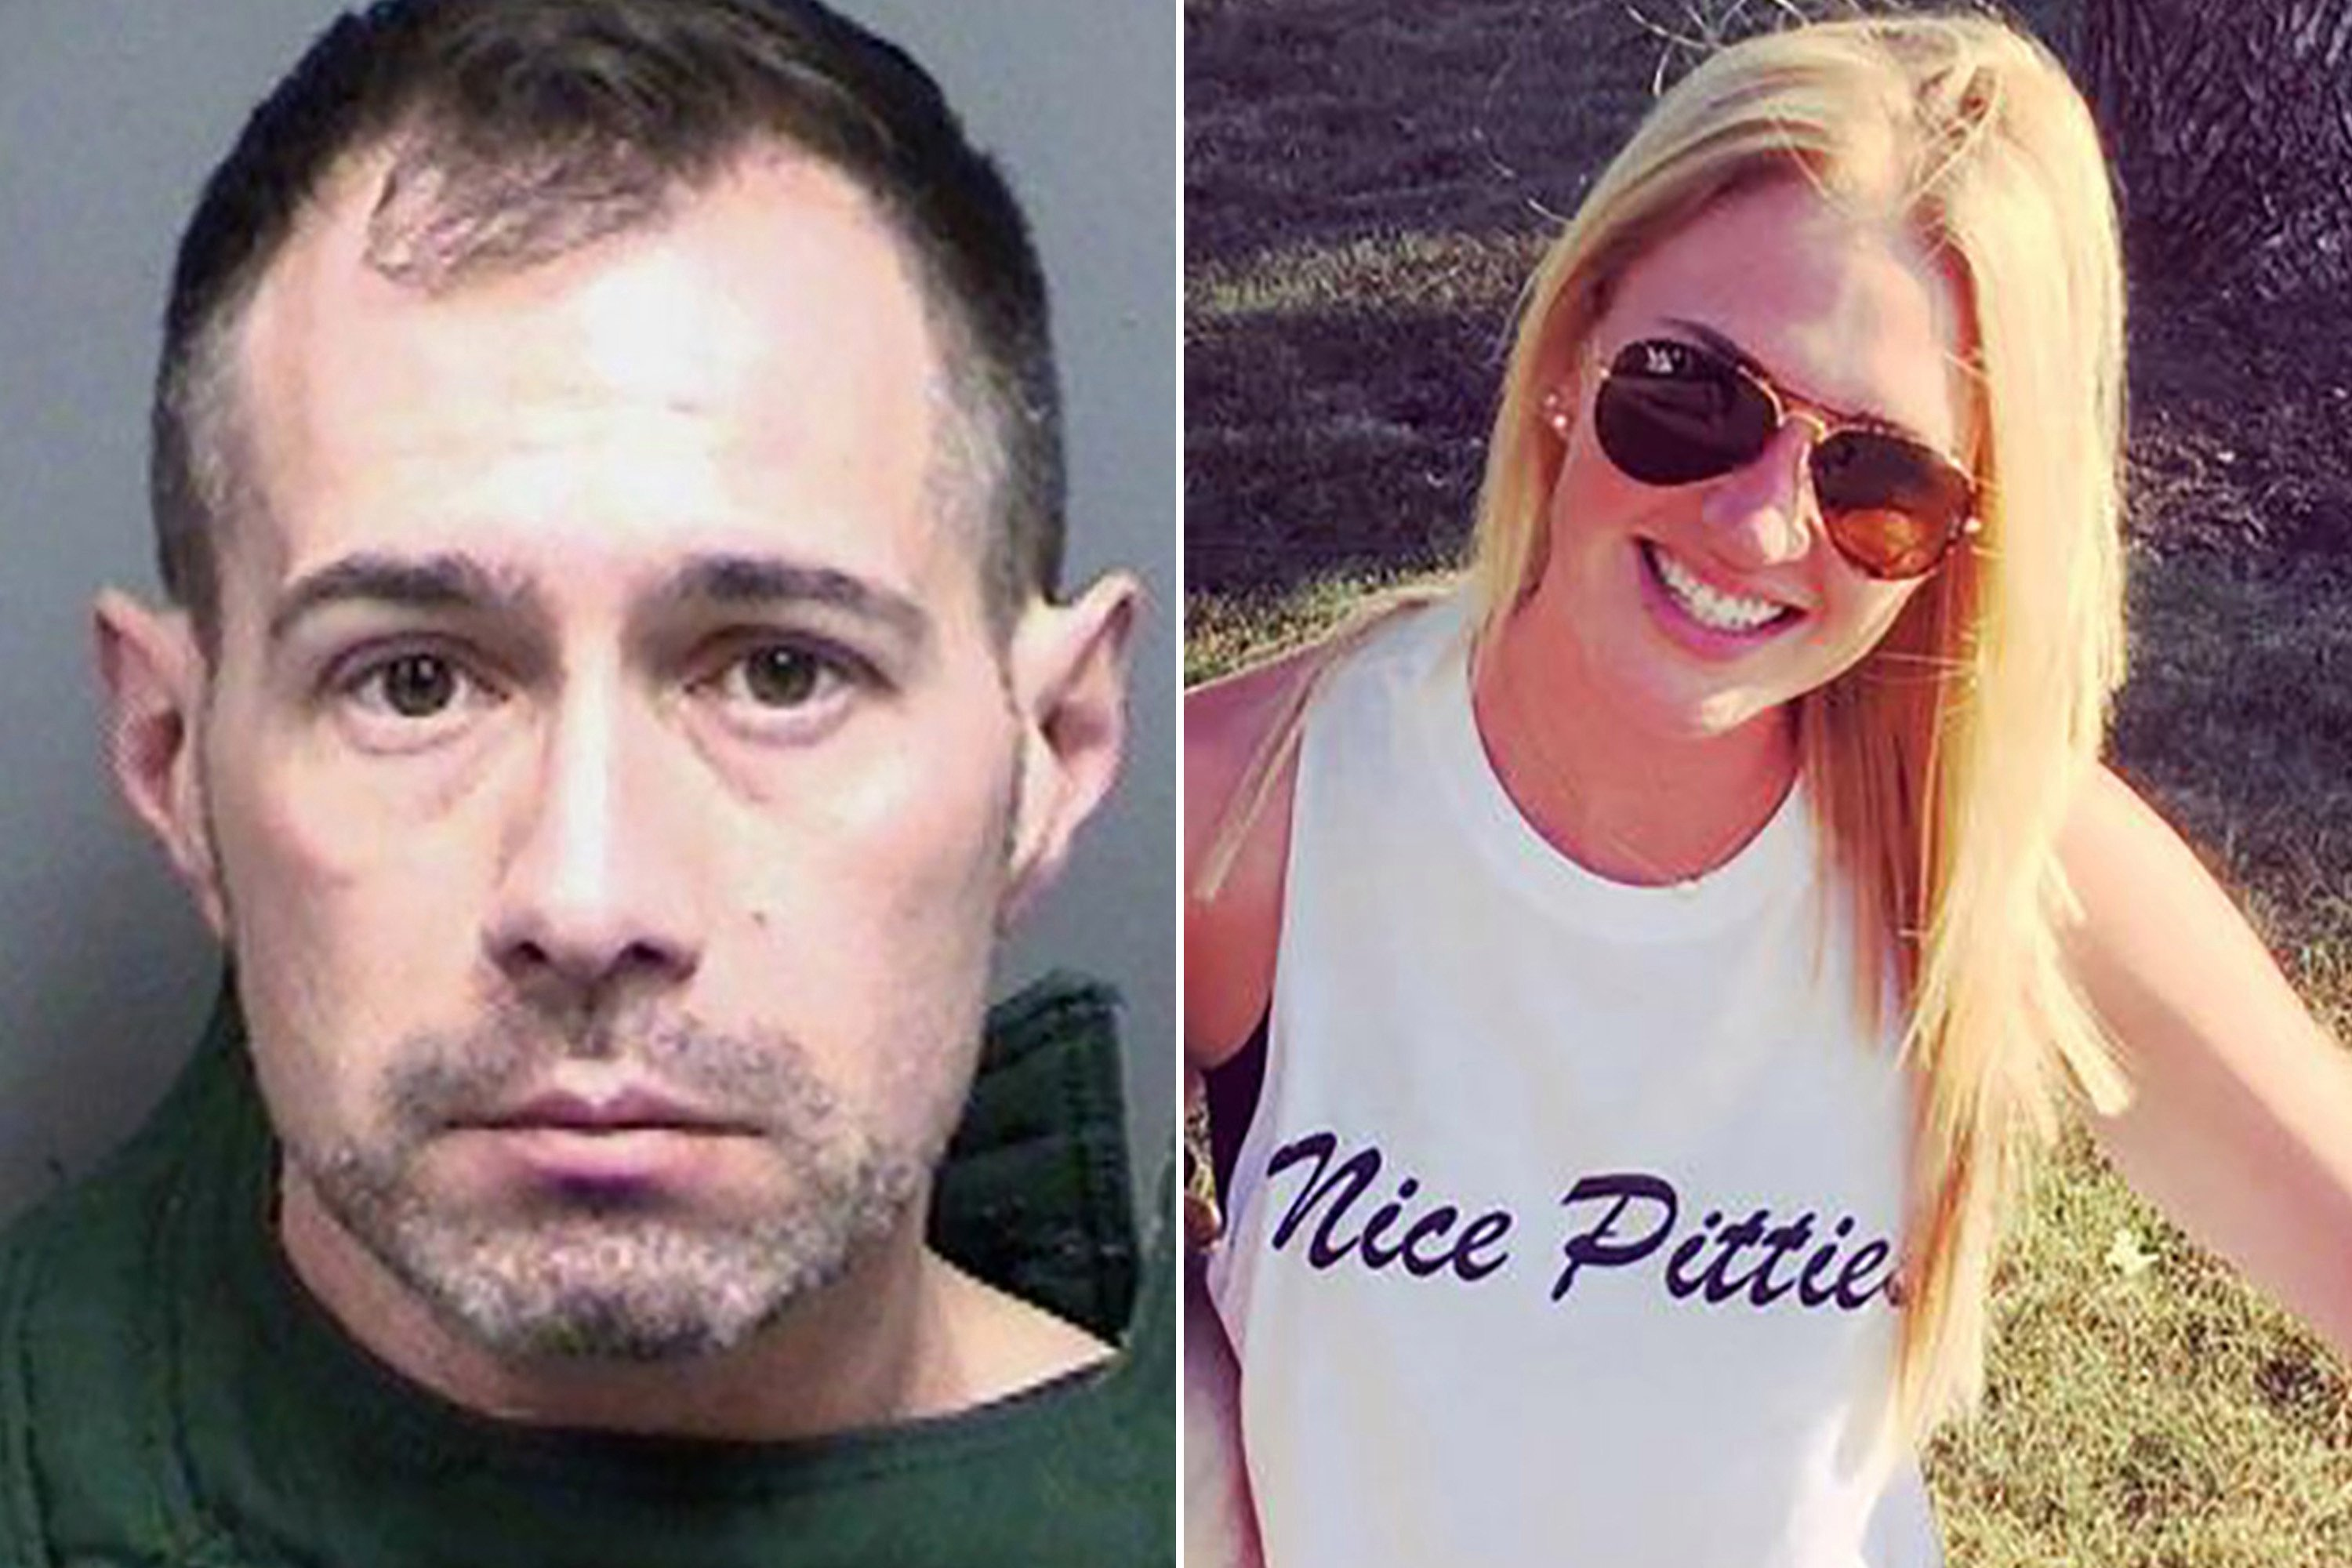 Newlywed confesses to priest he killed his wife: cops